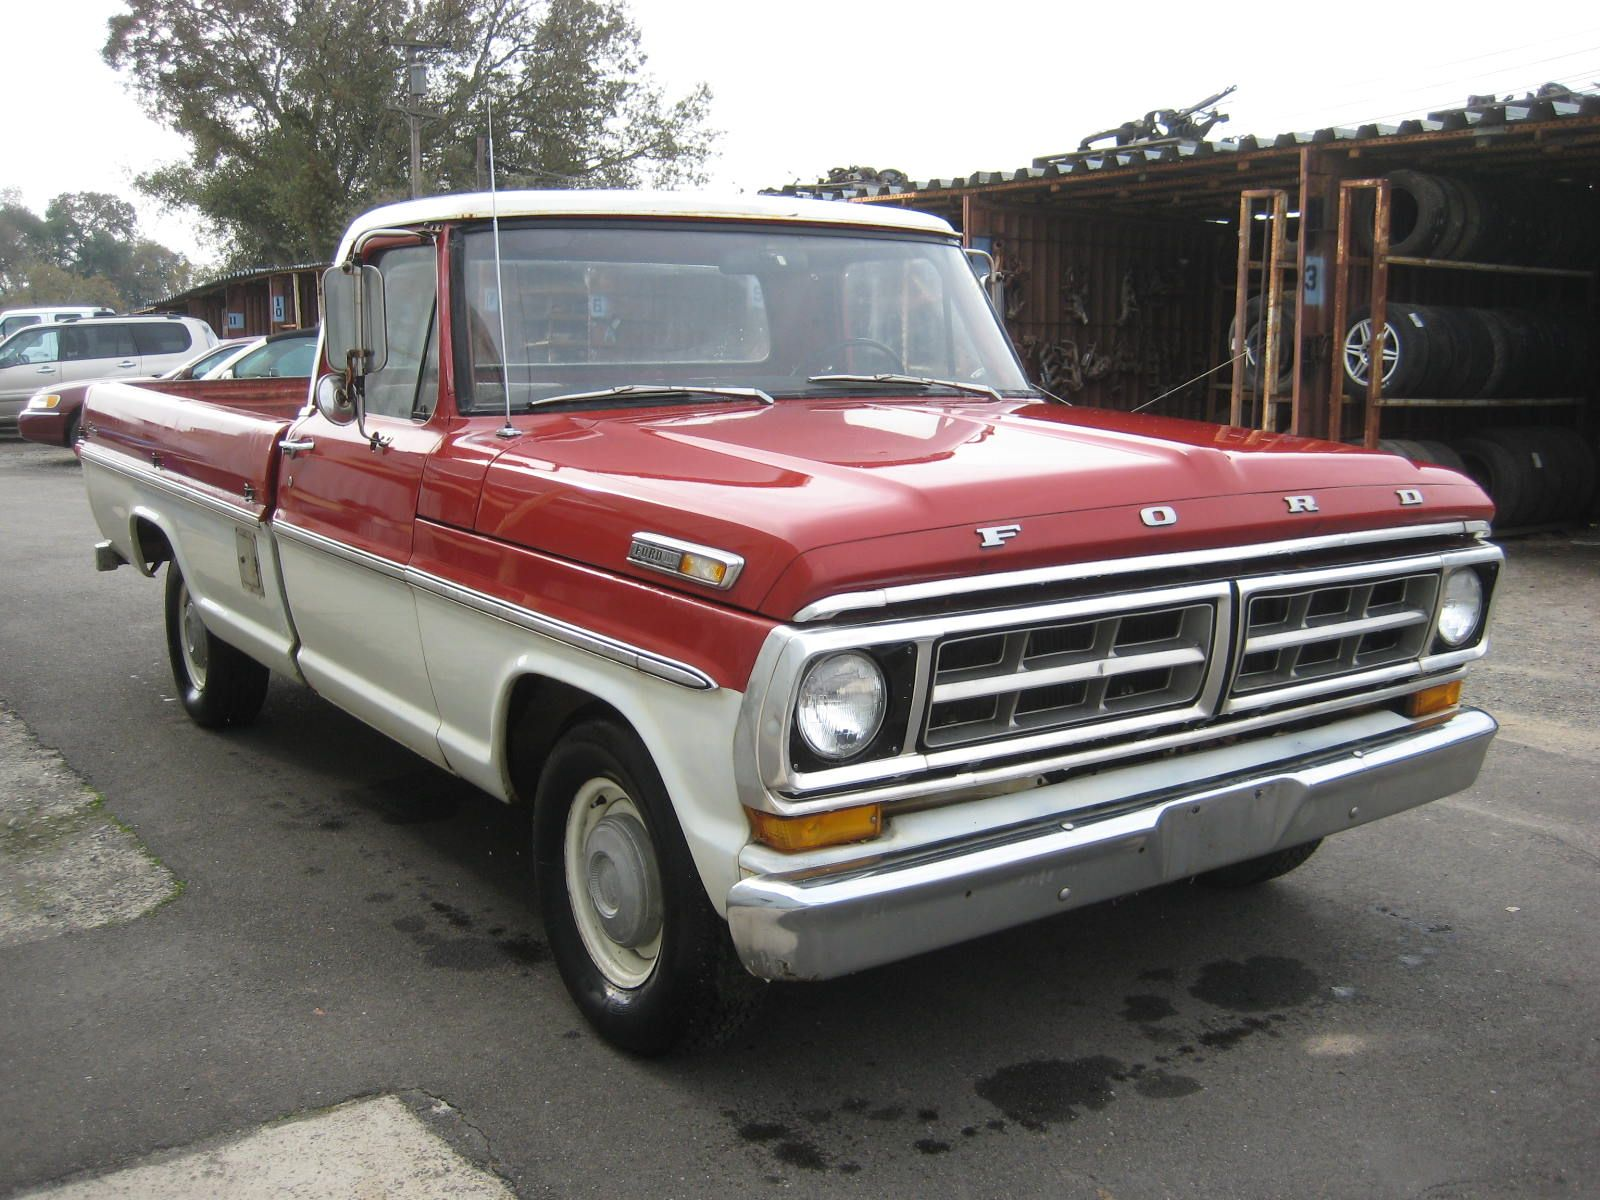 1971 ford f100 maintenance restoration of old vintage vehicles the material for new